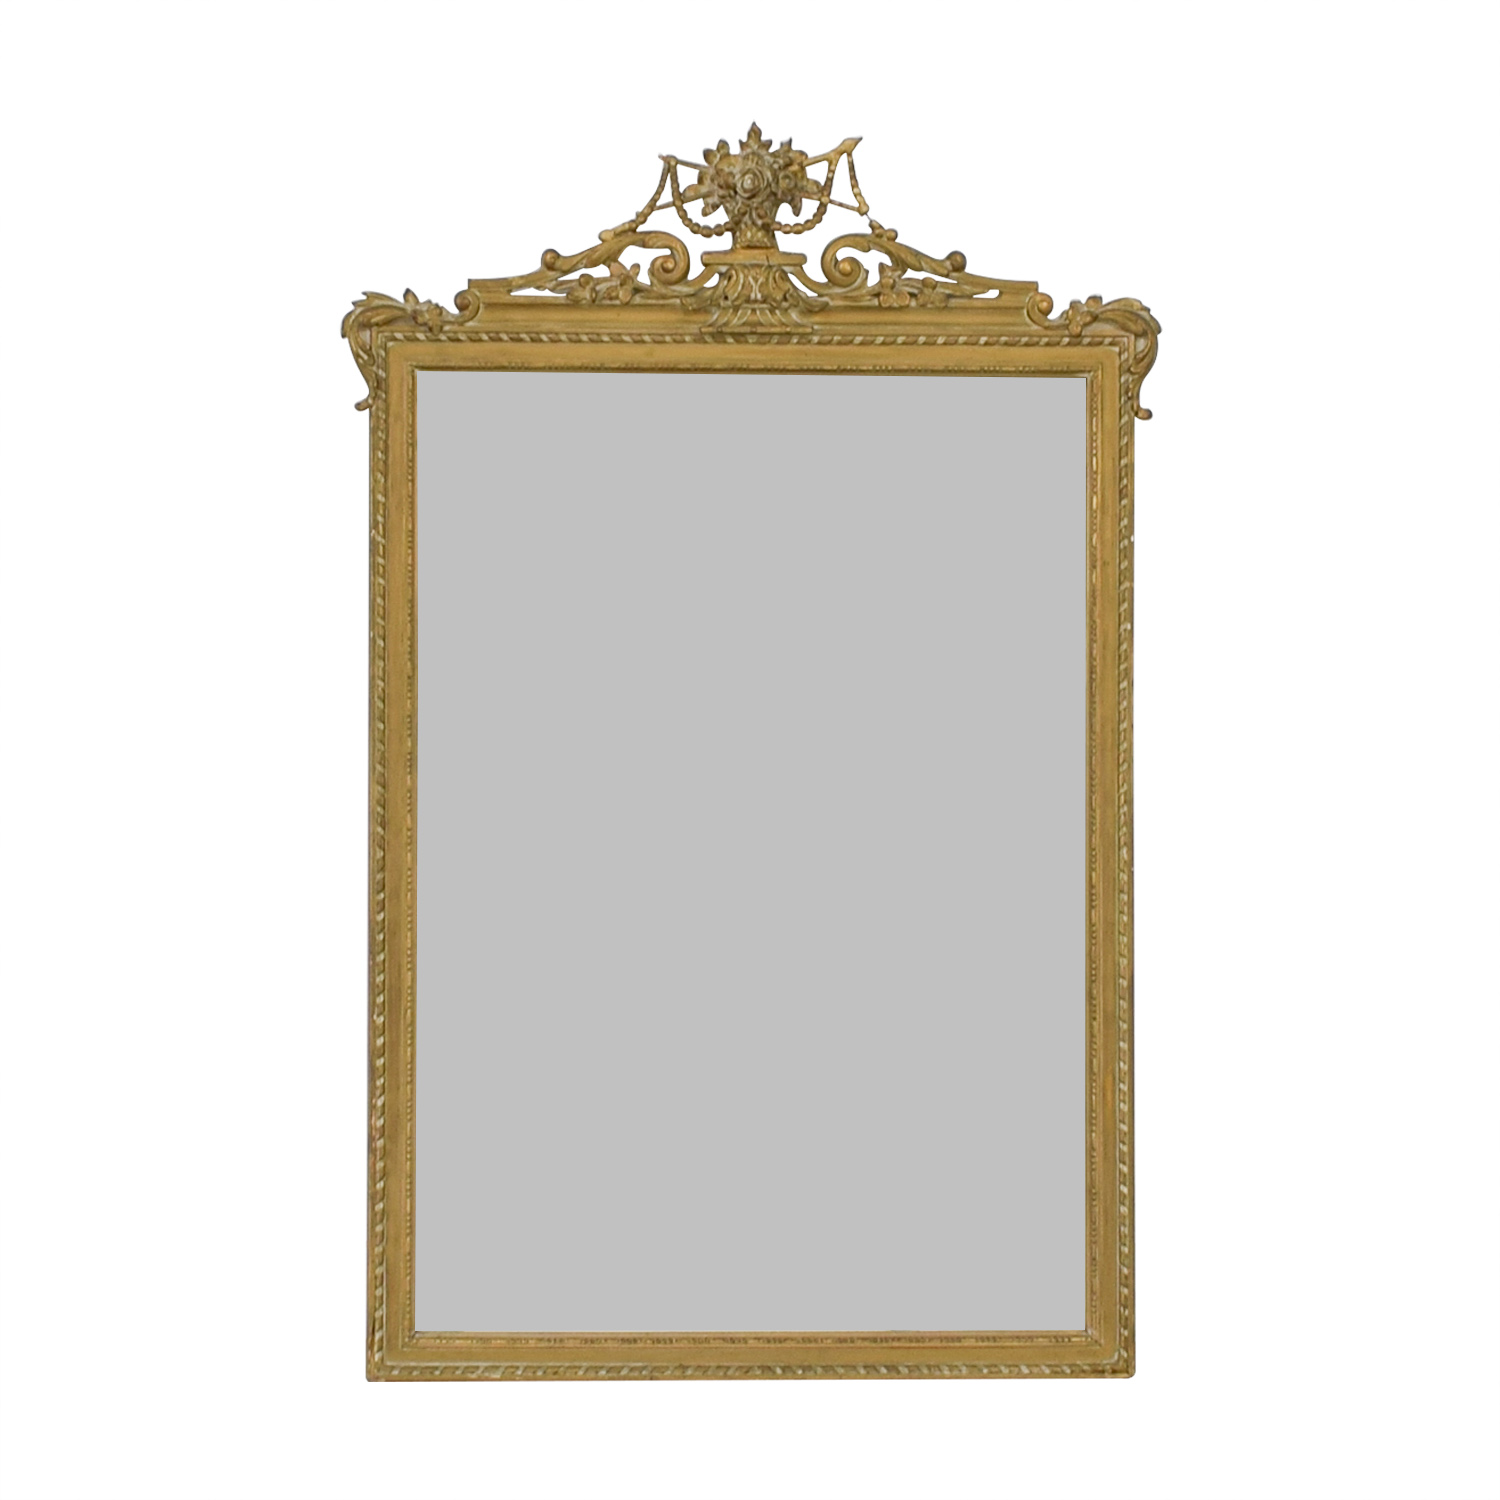 Antique Gold Framed Mirror nyc